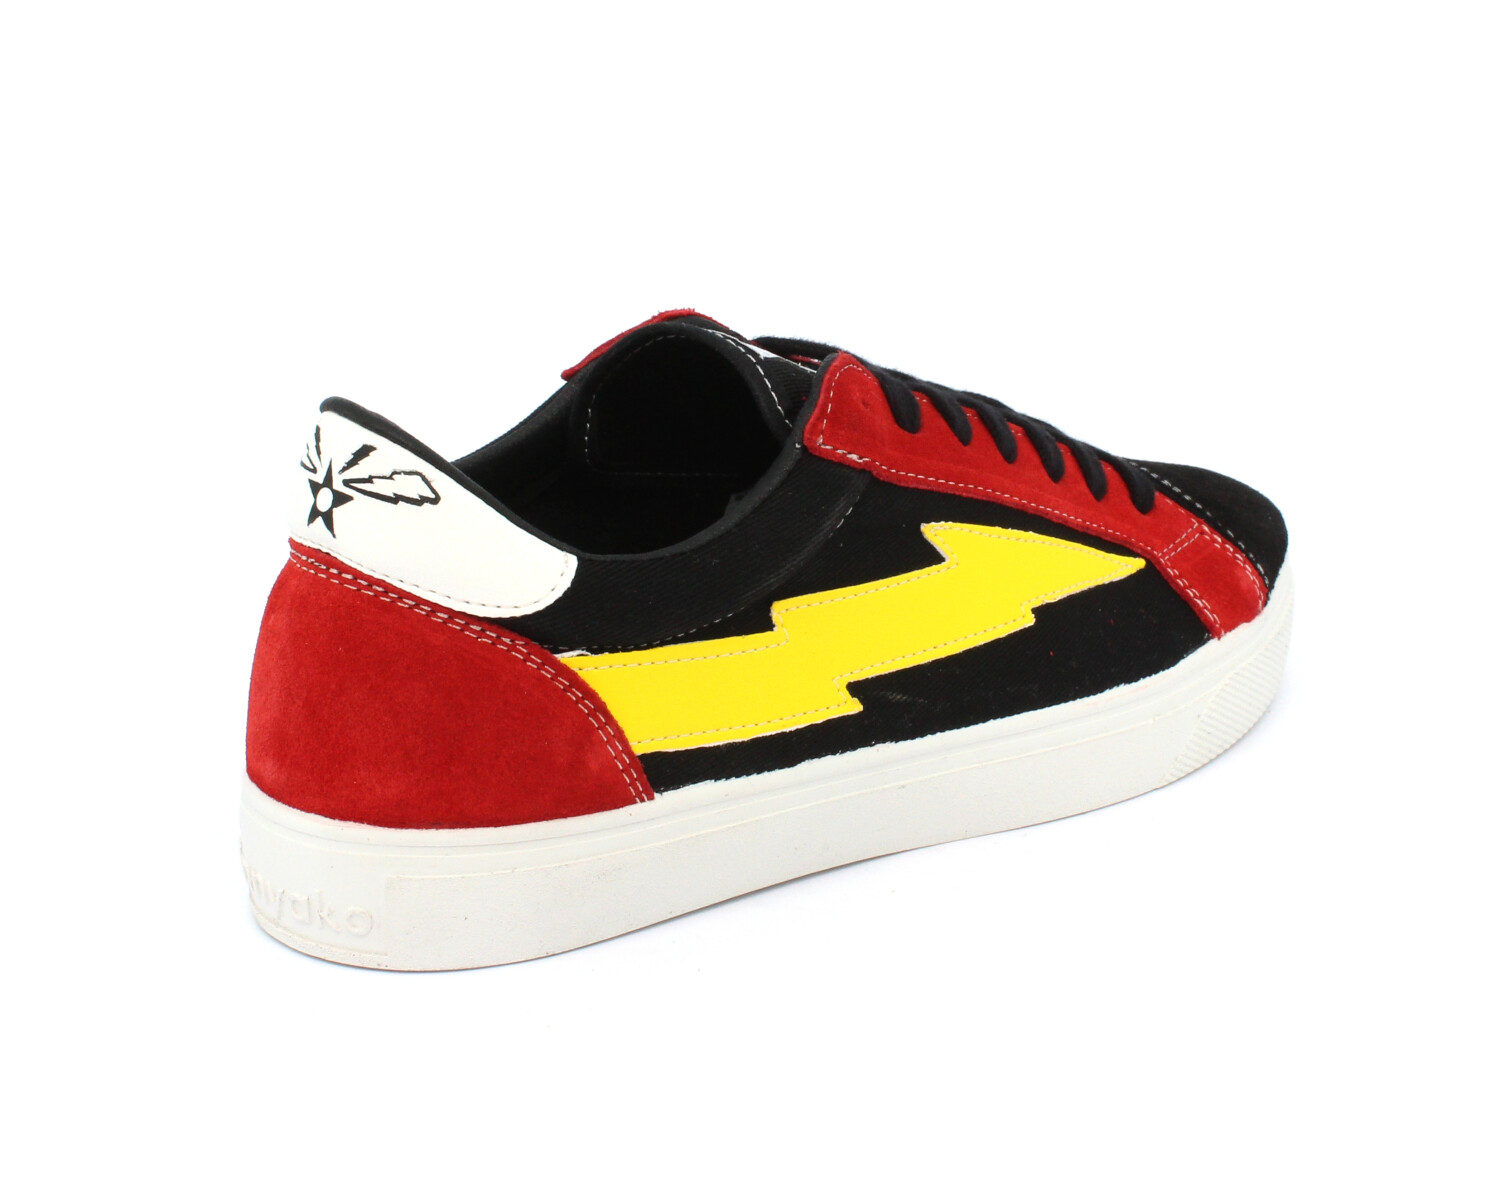 Sneaker SANYAKO THUNDERBOLT FLASH GORDON BLACK/RED/YELLOW